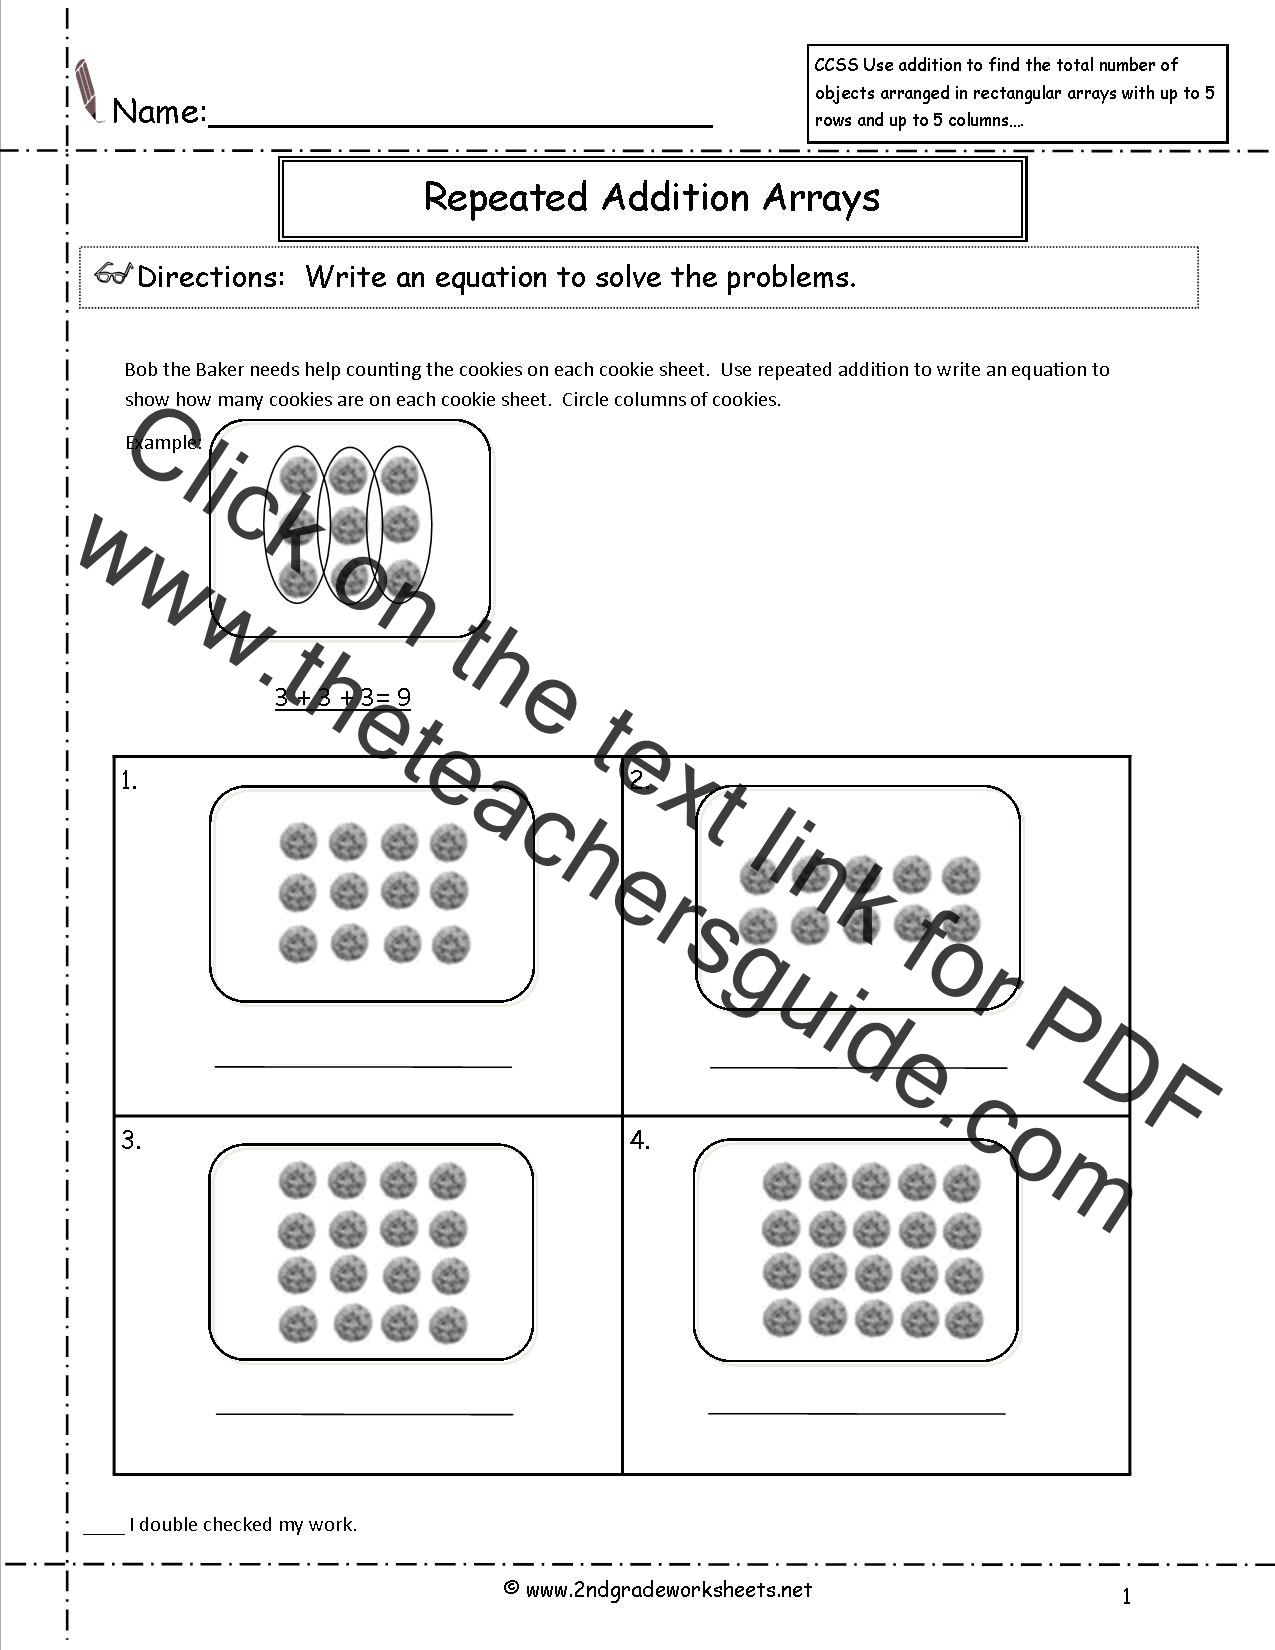 CCSS 2OA4 Worksheets – Worksheets That Work